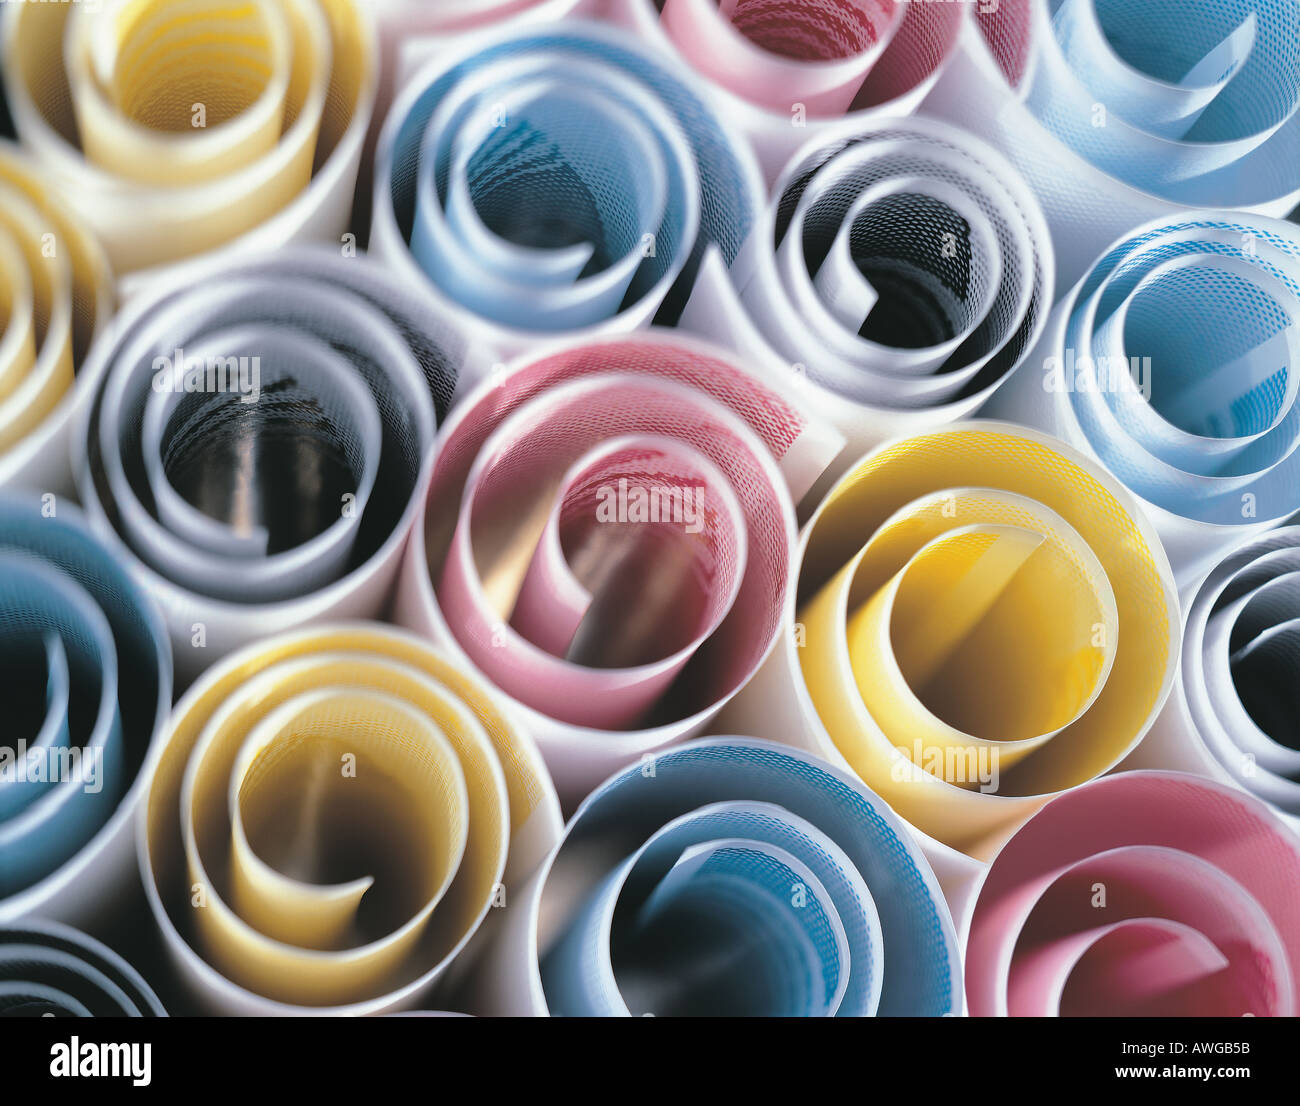 Scrolls of printing papers CMYK - Stock Image